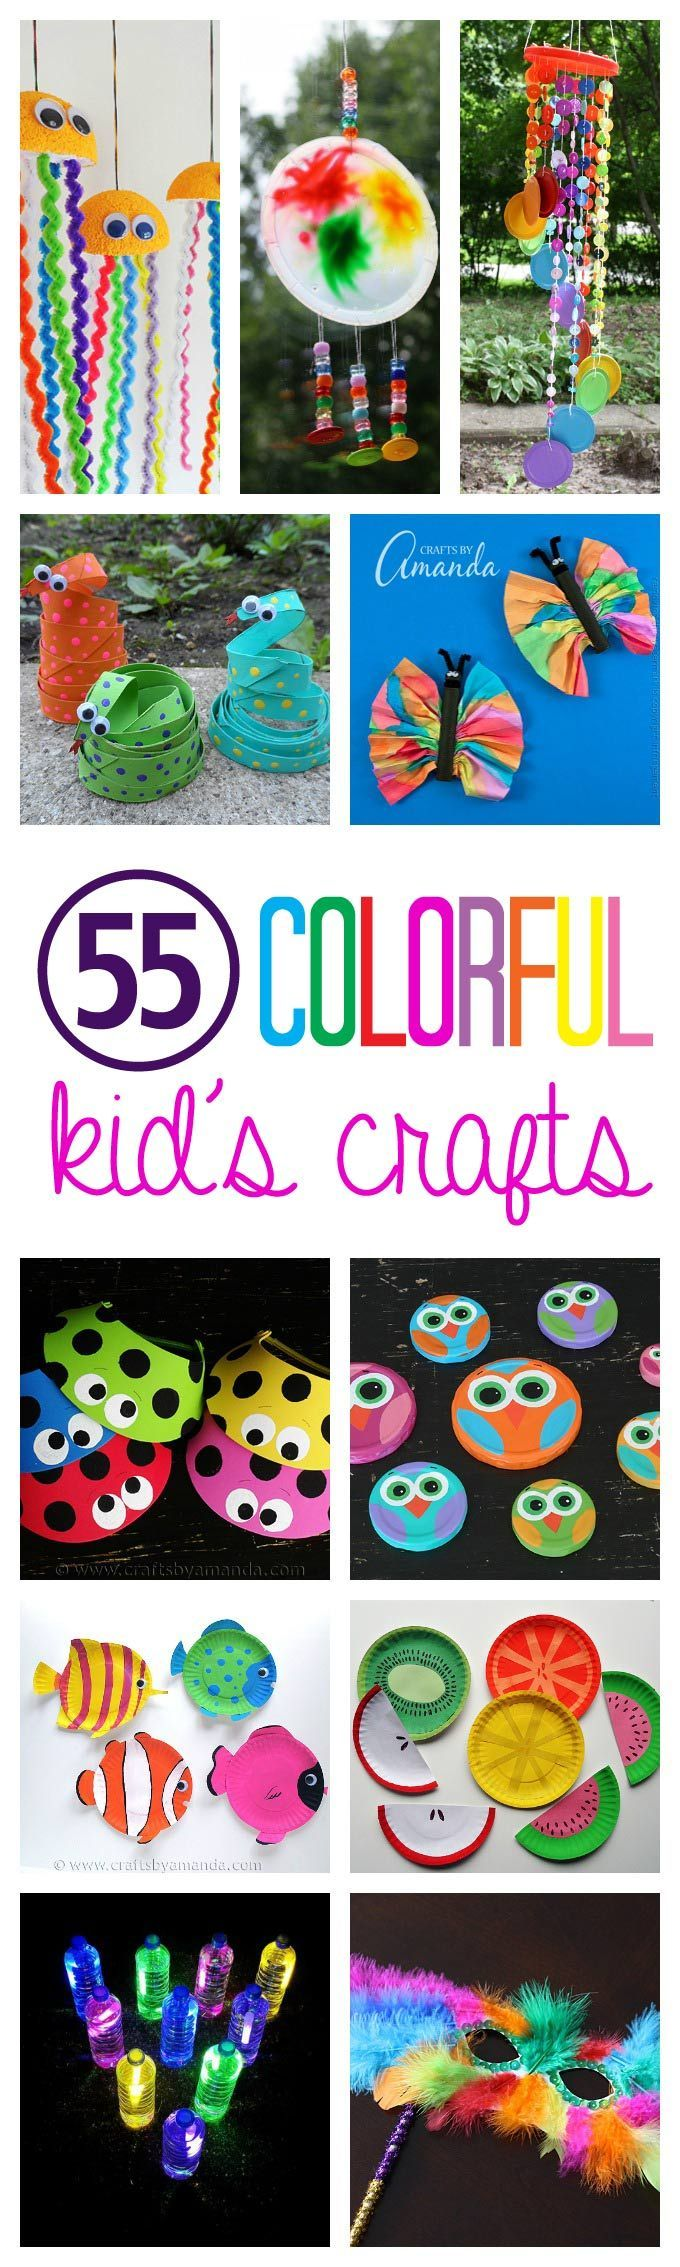 Craft Ideas For Kids To Make Part - 44: Colorful Kidu0027s Crafts - More Than 55 Colorful Craft Ideas Colorful Kidu0027s  Crafts: Make Cute Monsters From Recycled Materials And Other Supplies.